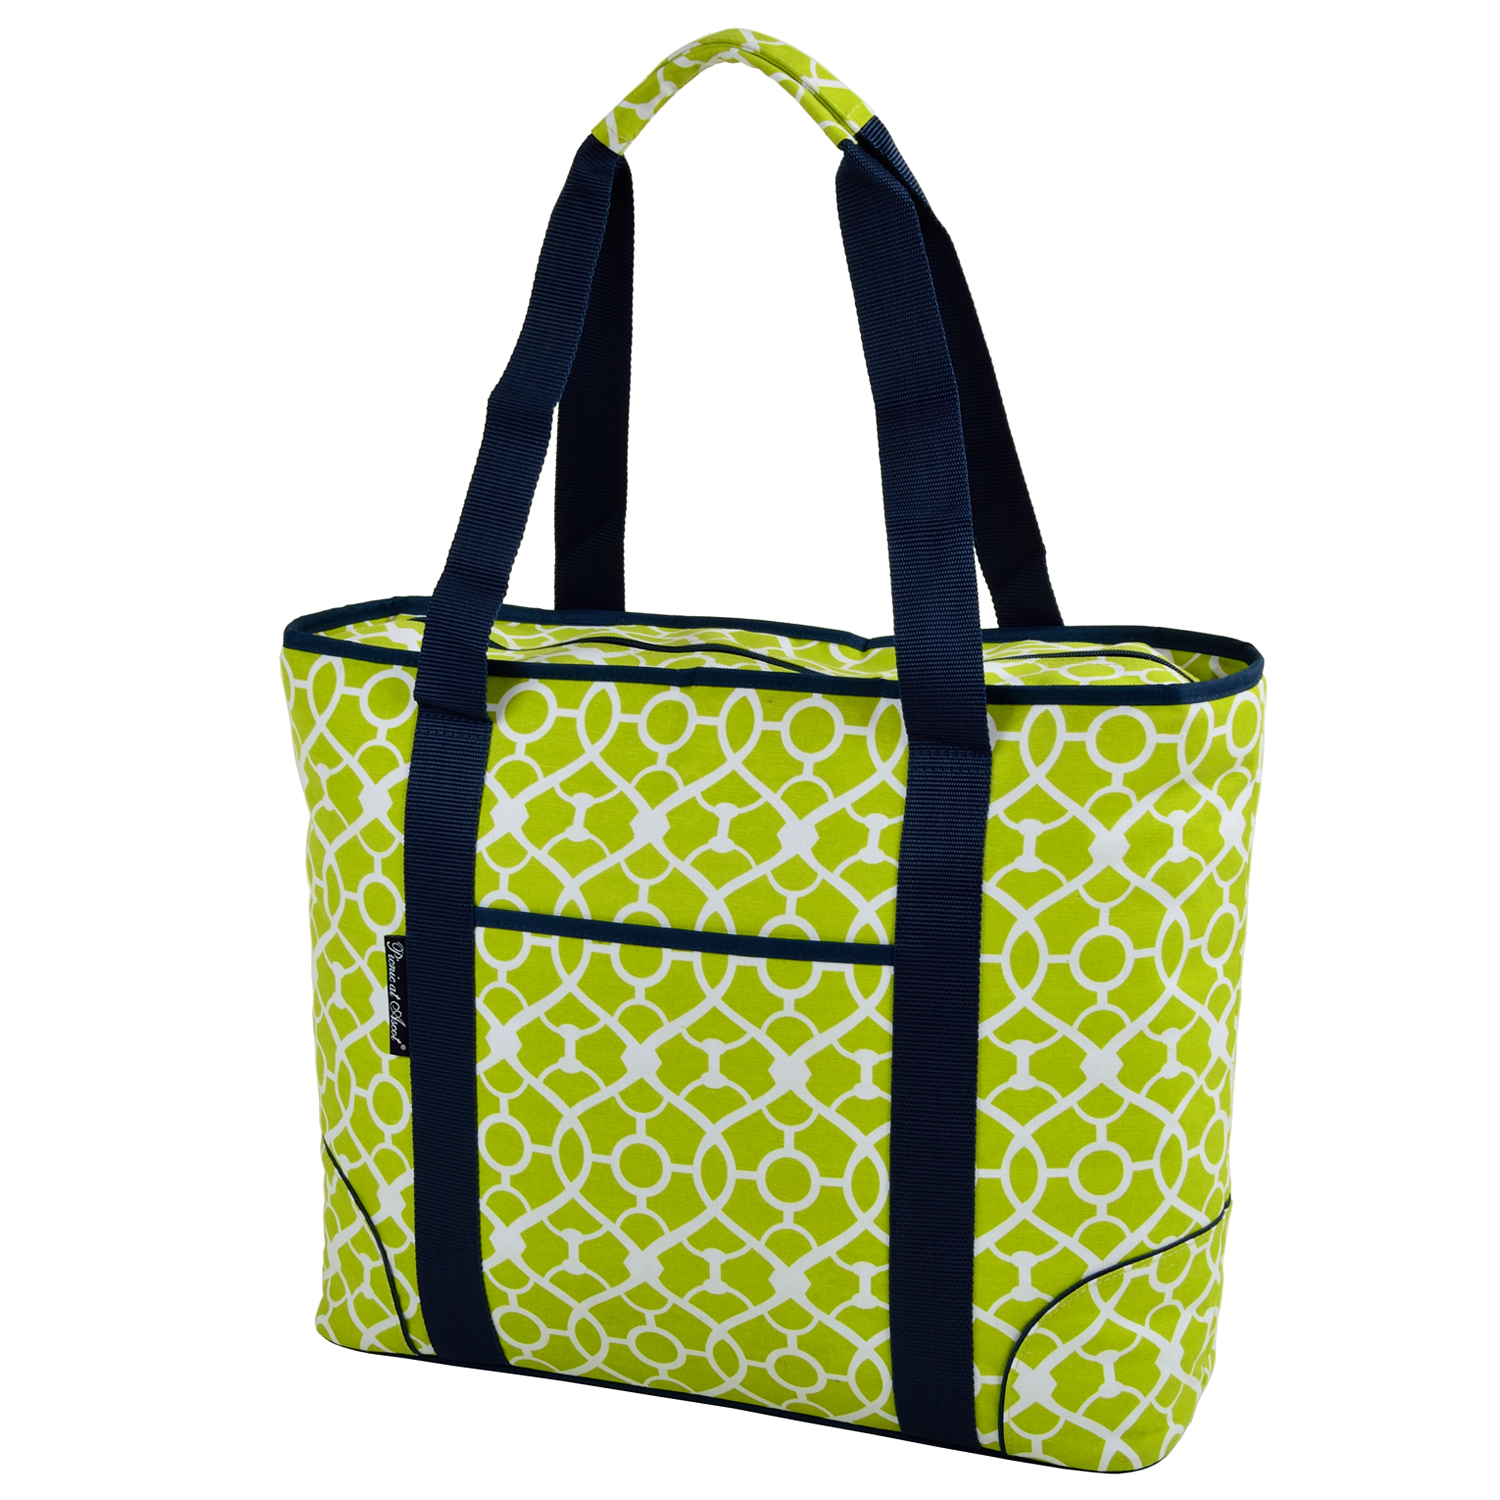 Picnic At Ascot Extra Large Insulated Cooler Bag 30 Can